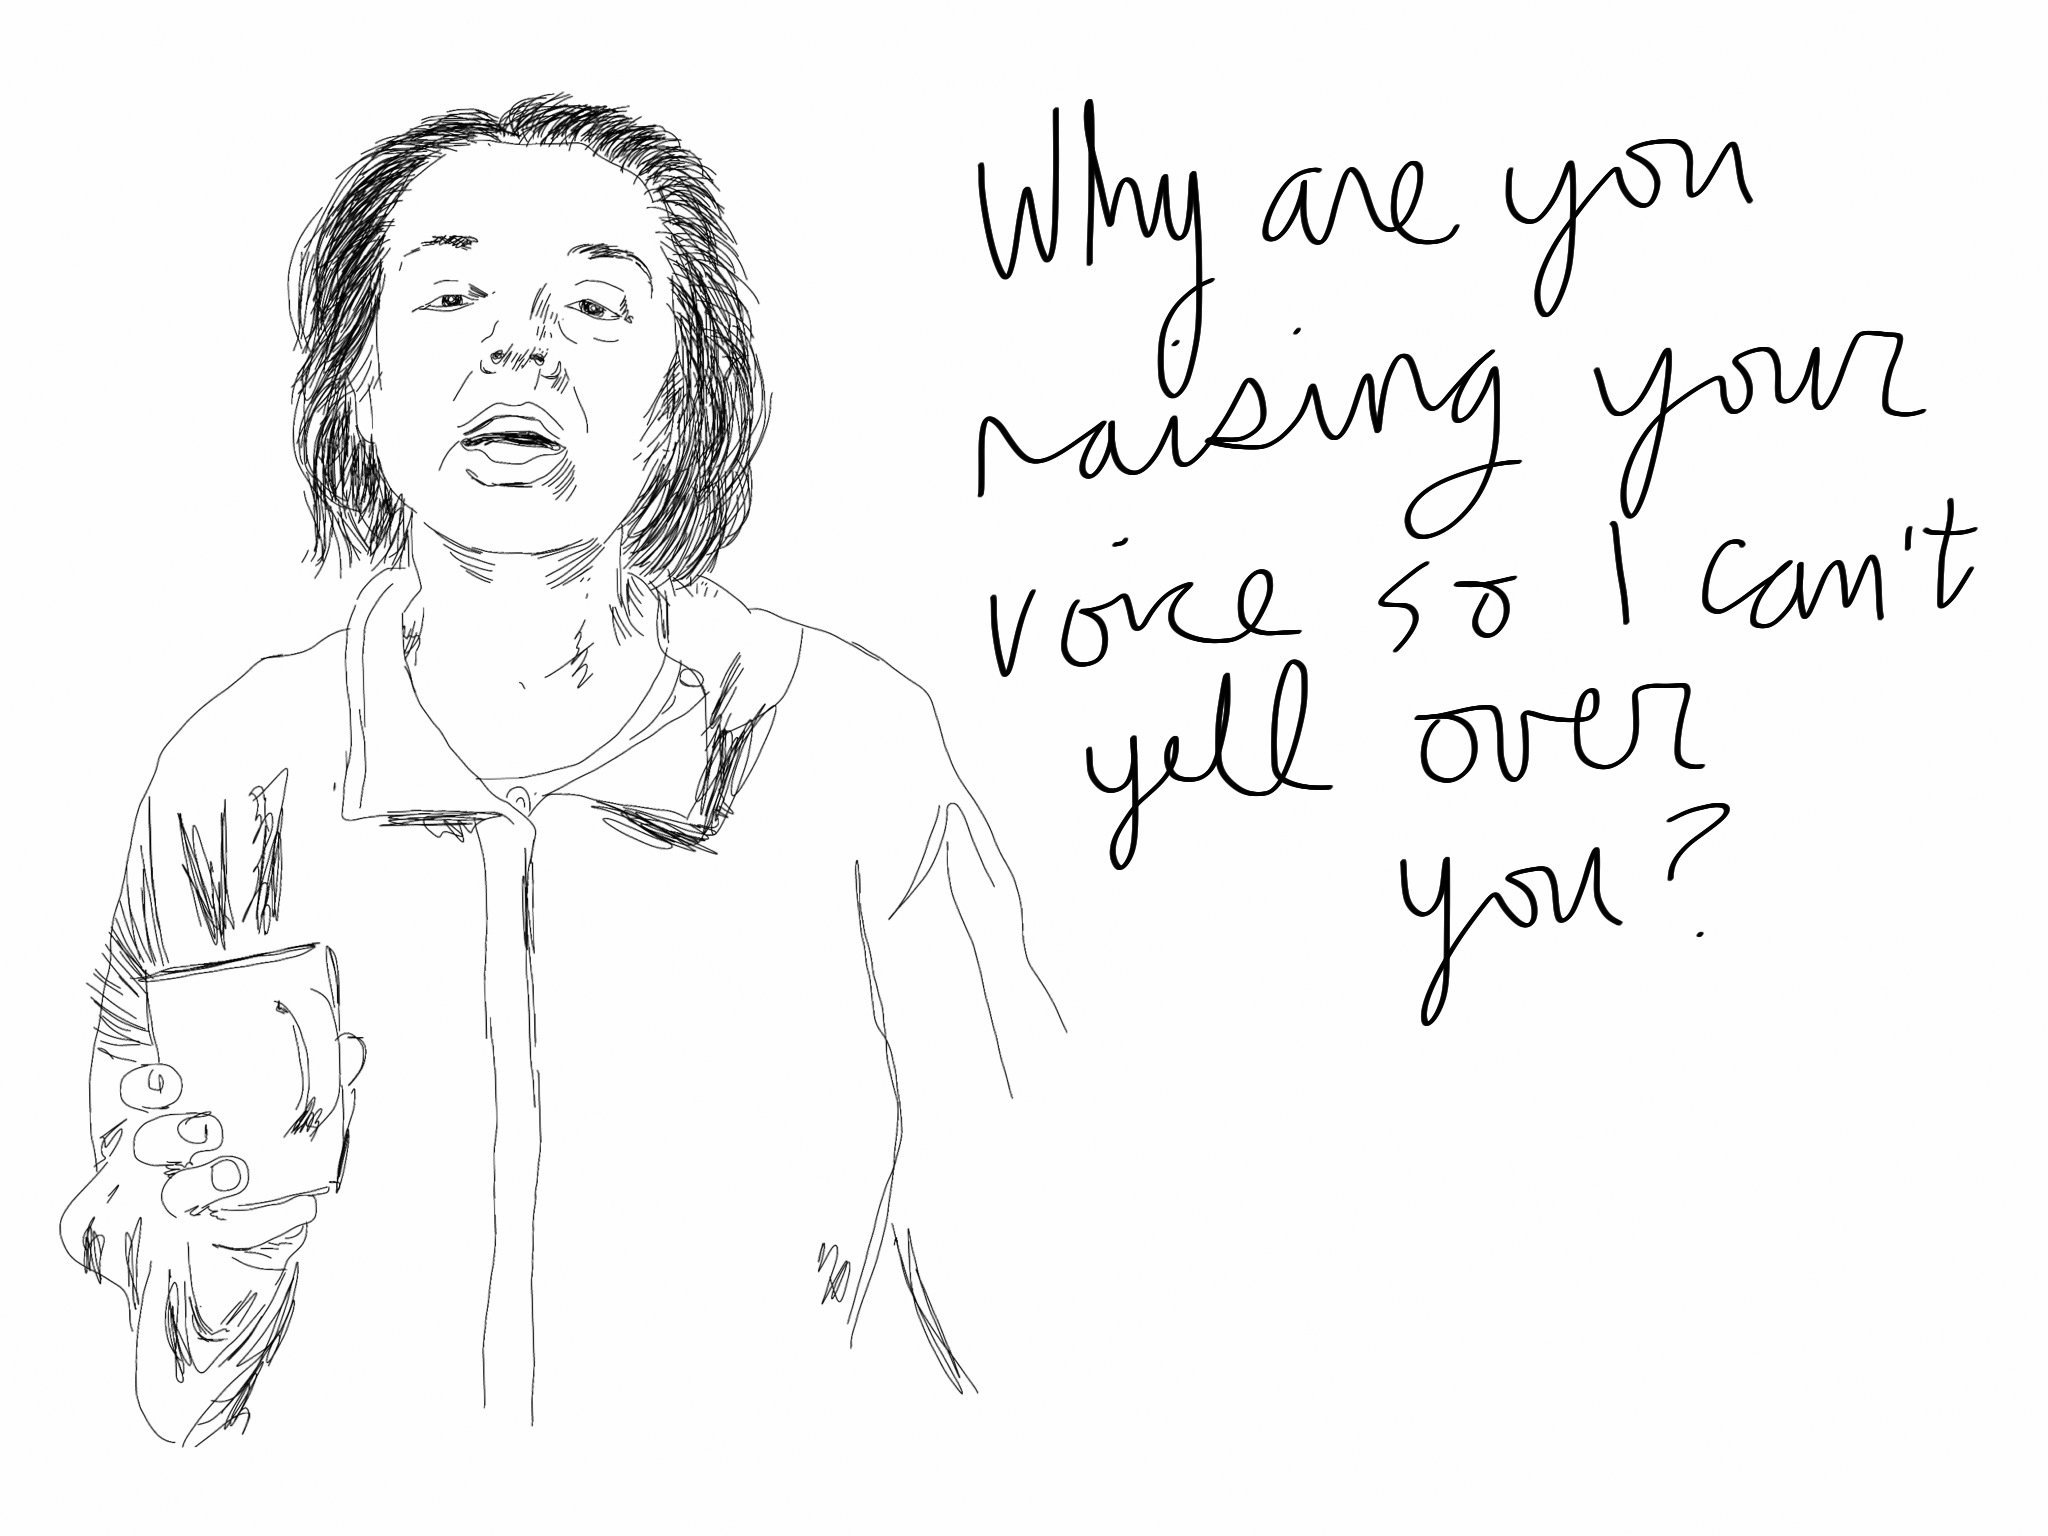 Raising your voice